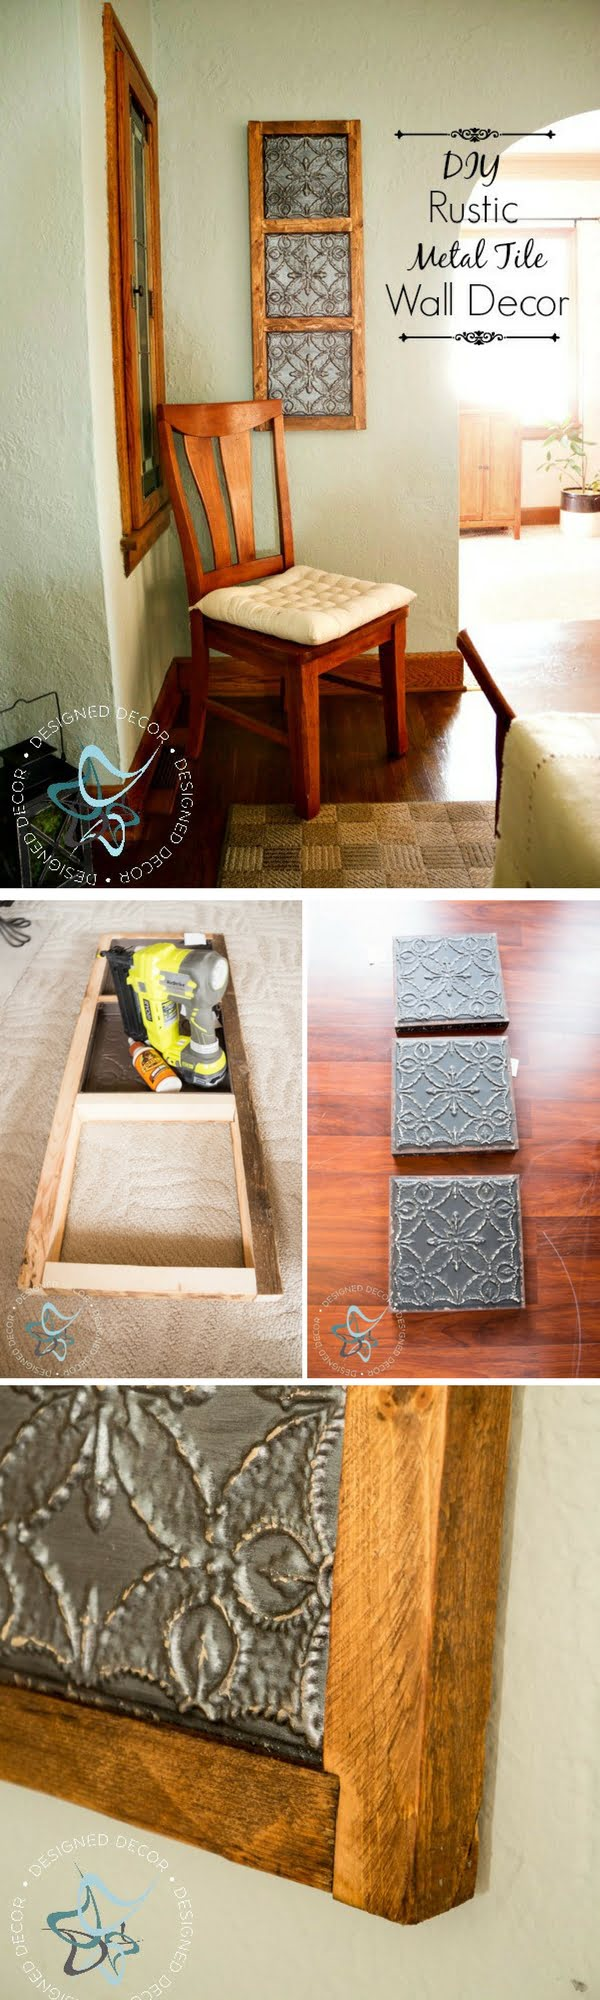 20 Crafty 2x4 DIY Projects That You Can Easily Make - Check out how to make DIY wooden wall decor from 2x4s